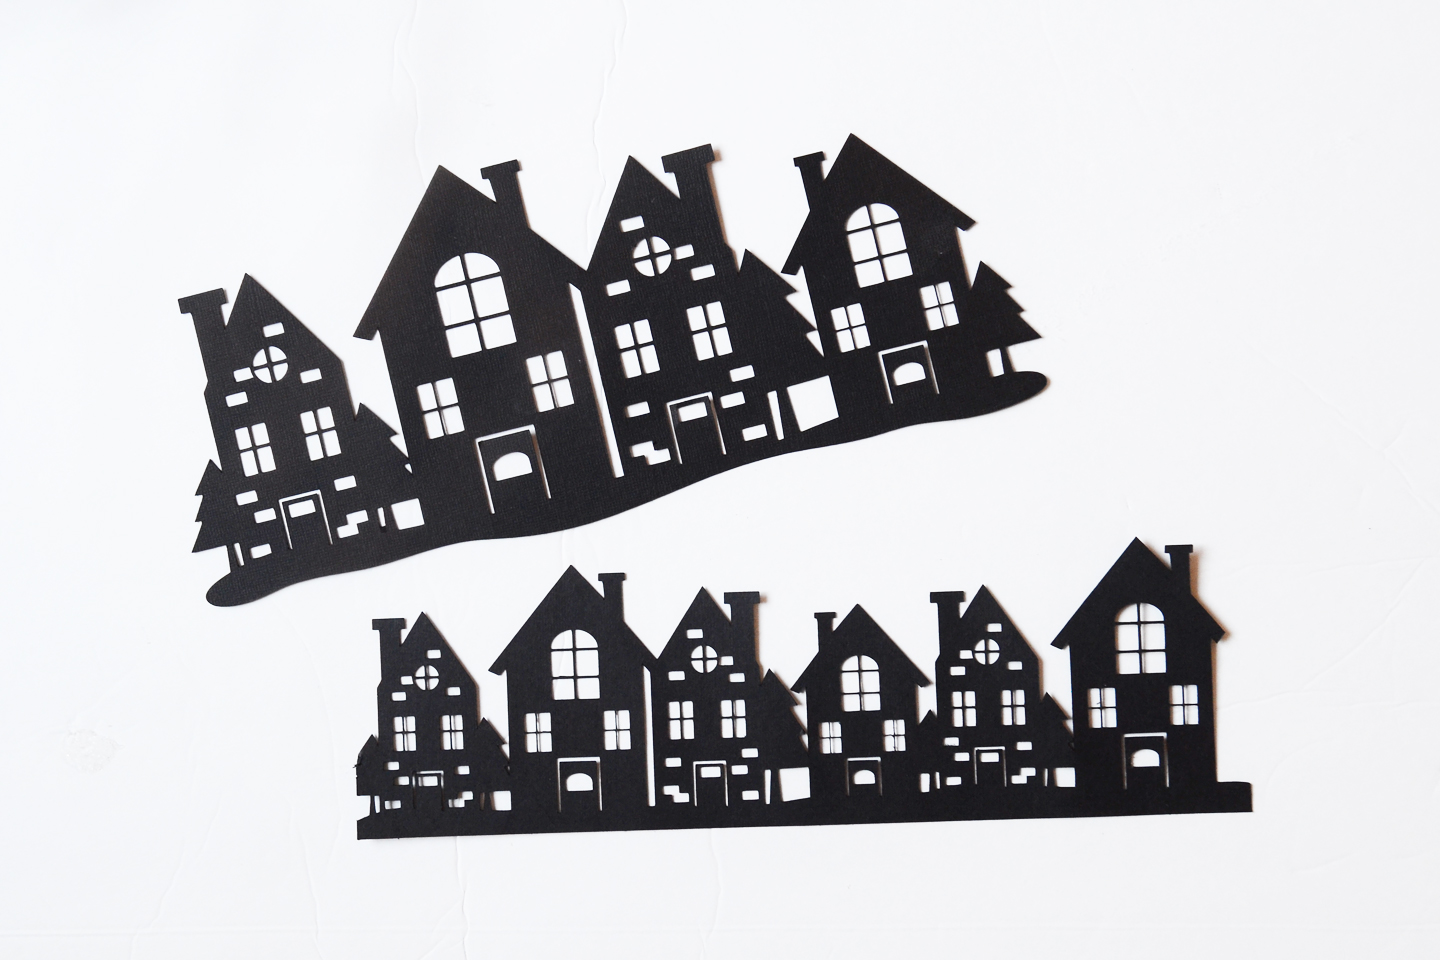 cut-out-houses-silhouette